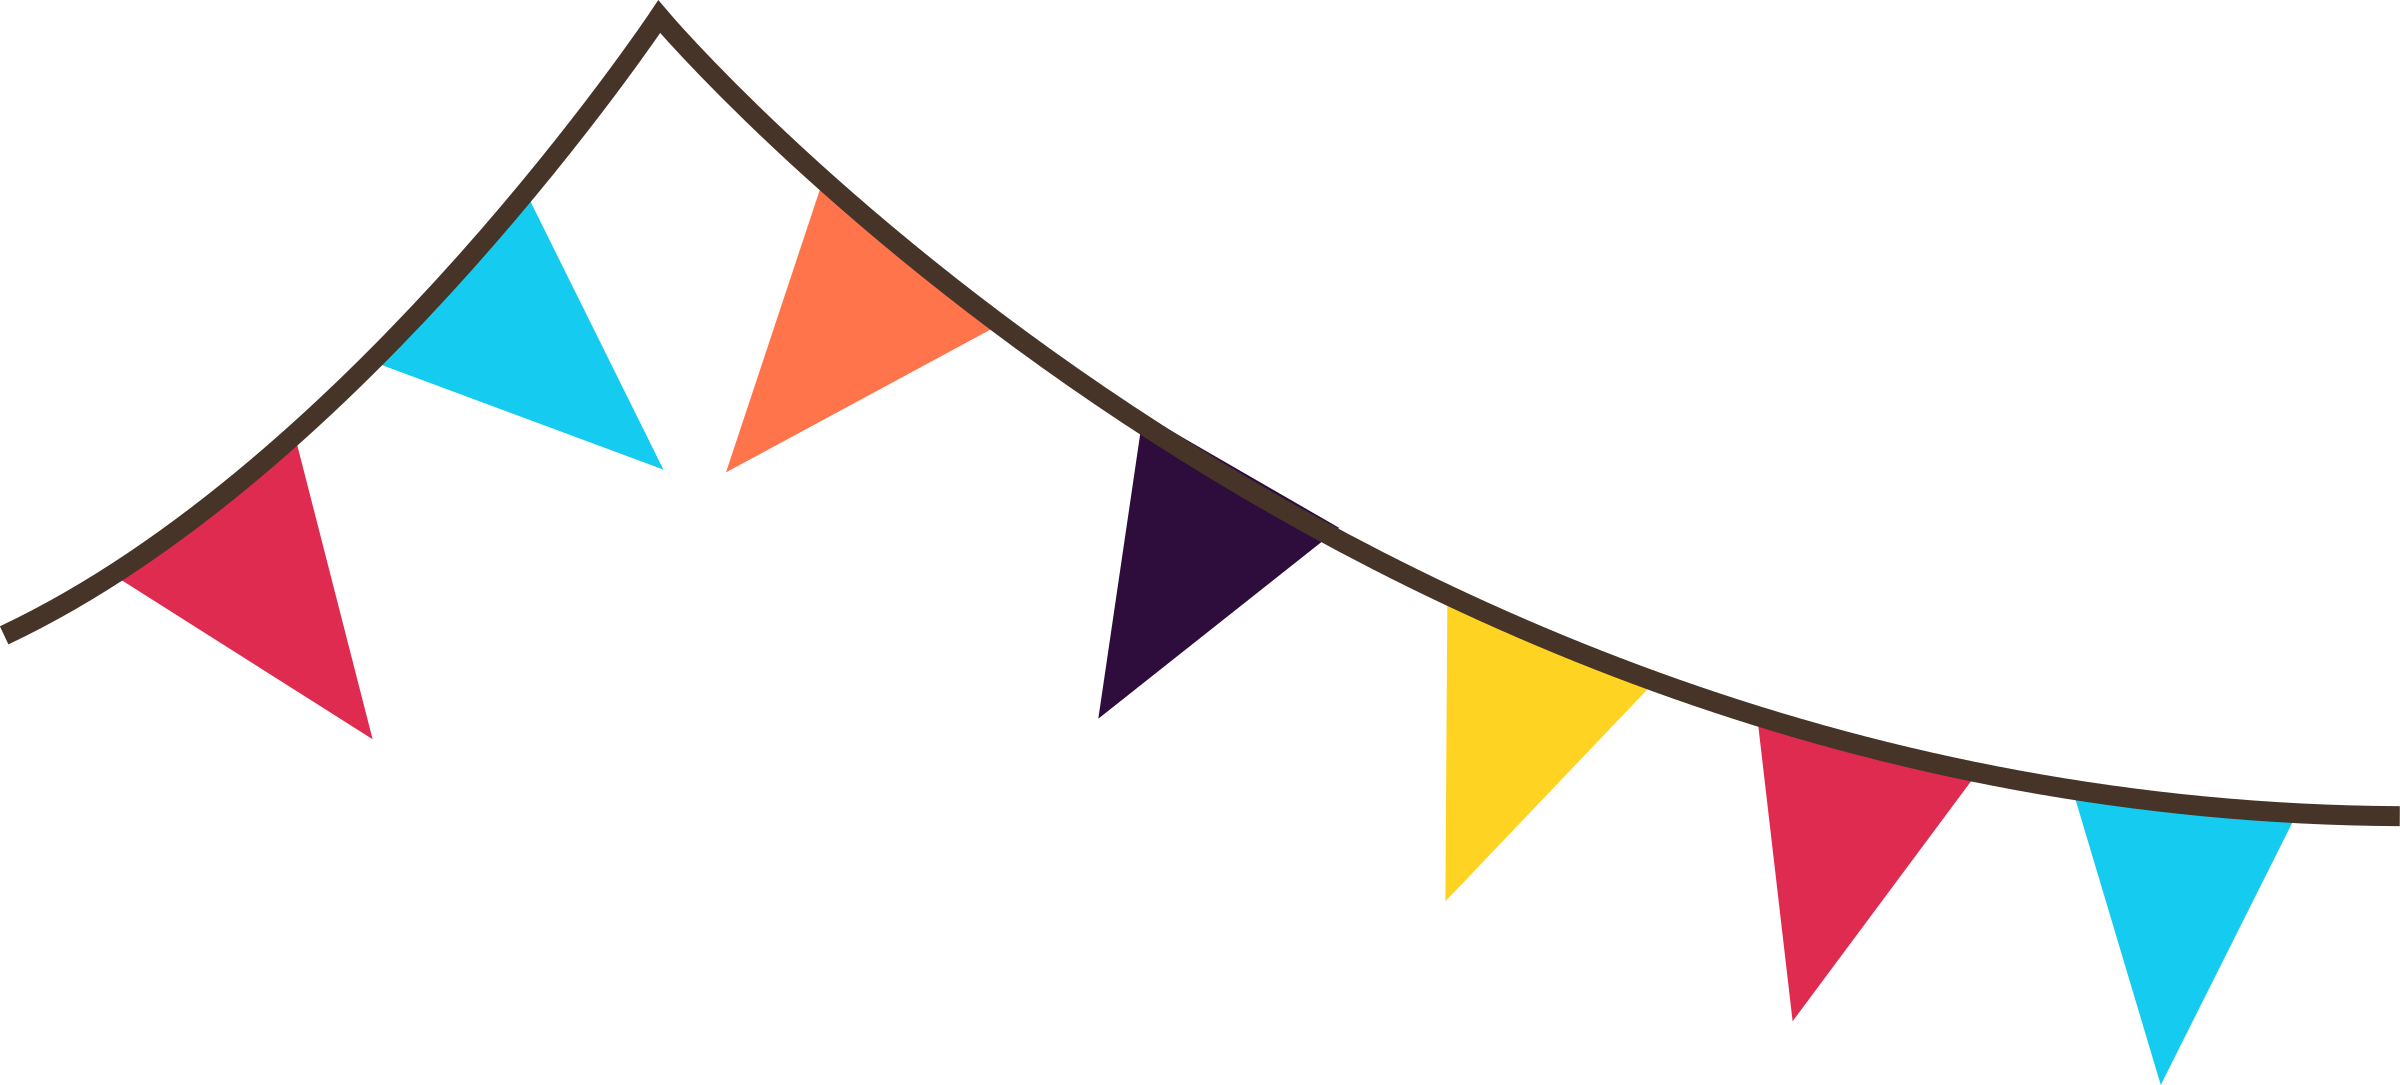 Banner flags big image. Festival clipart bunting